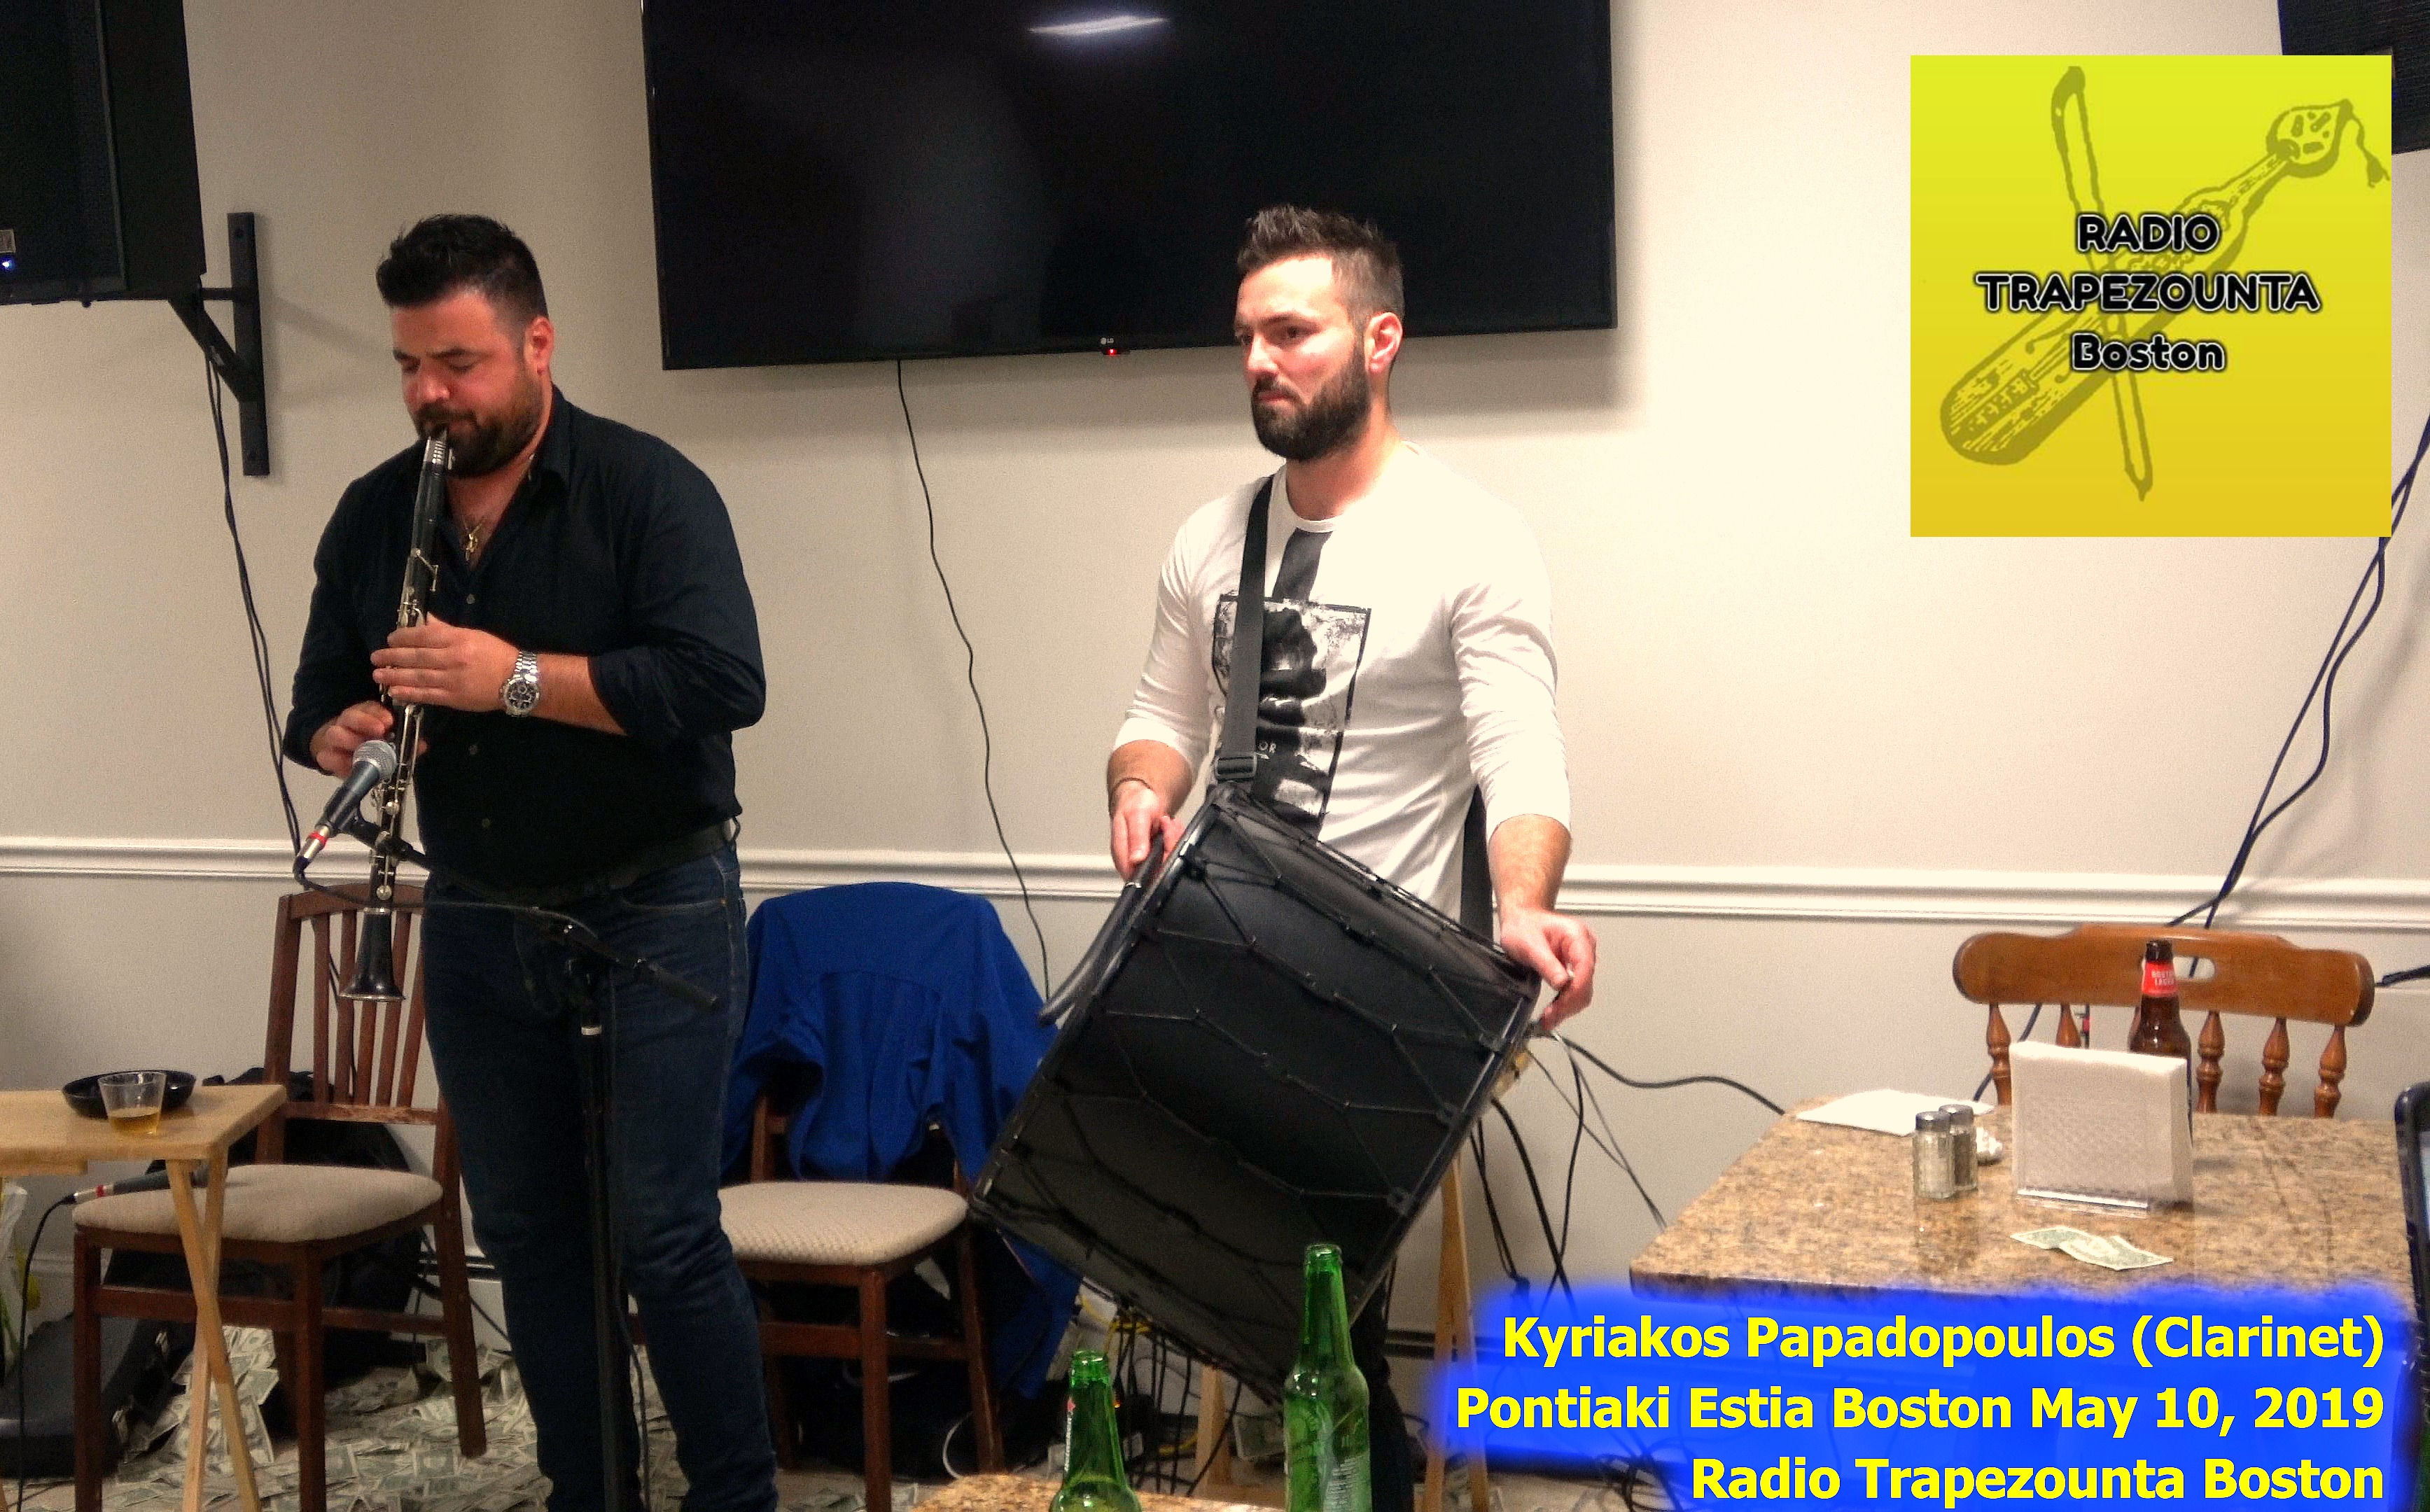 Kyriakos Papadopoulos (Clarinet) | Pontiaki Estia Boston 10May2019